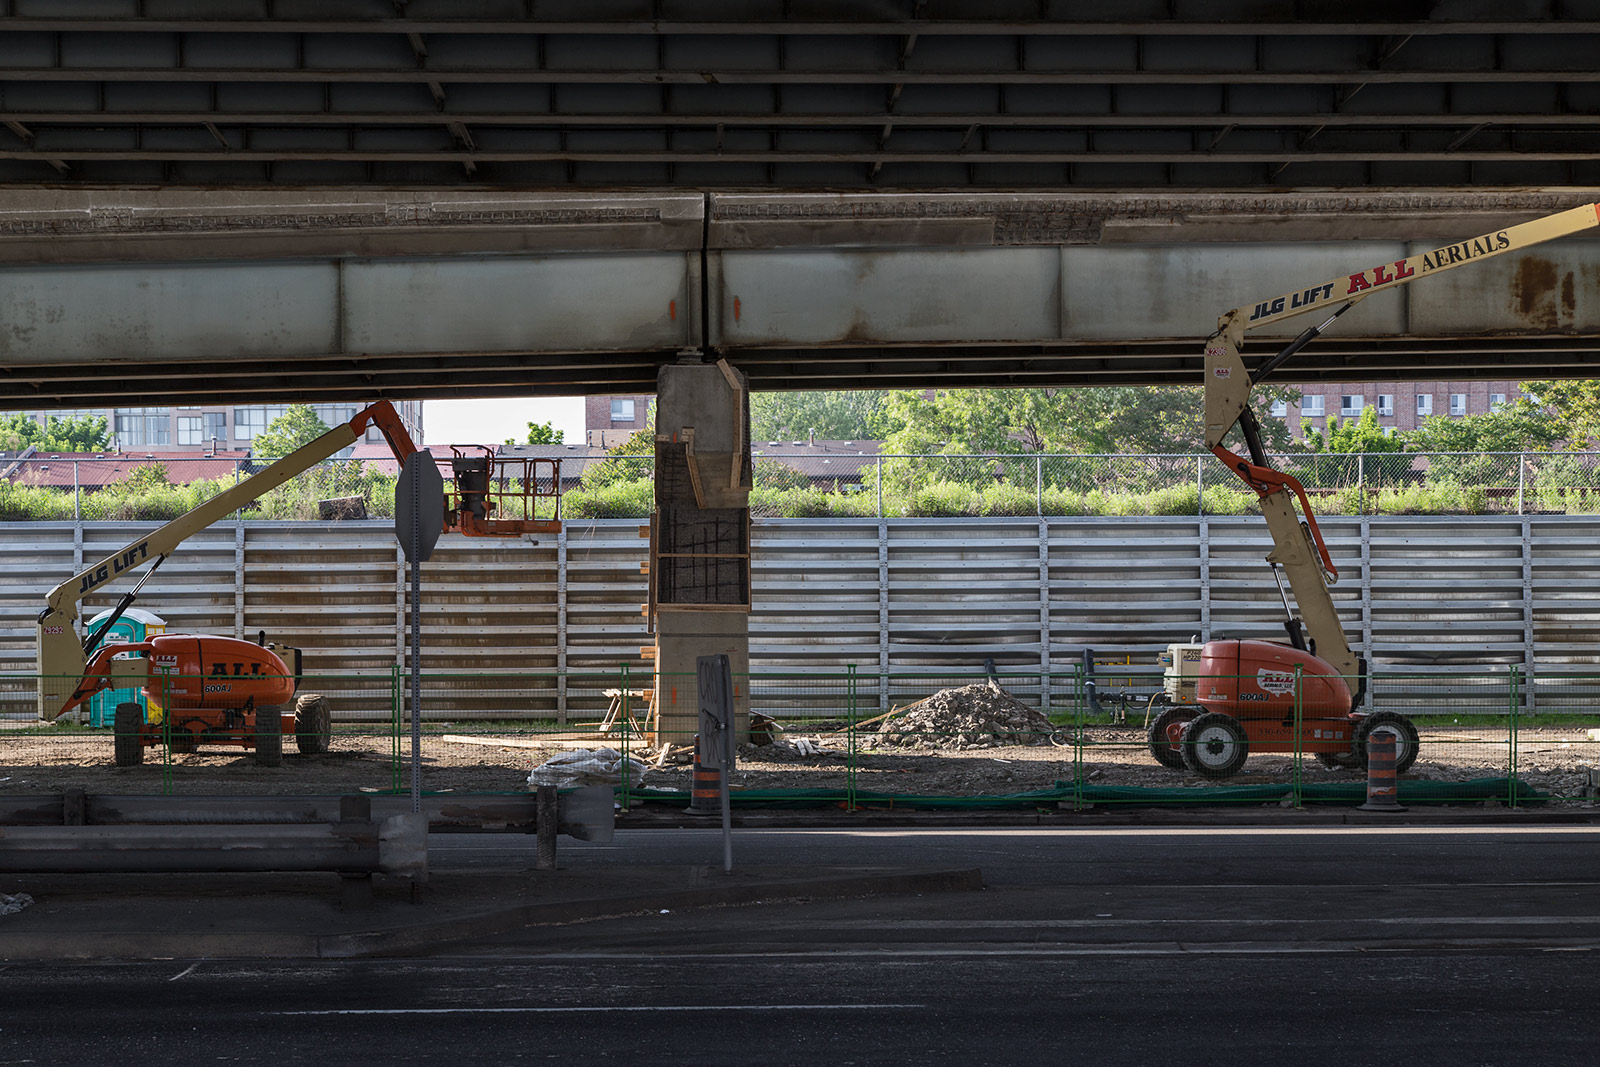 20140617. Aerial lifts await a new day of work on the east Gardiner Expressway in Toronto.